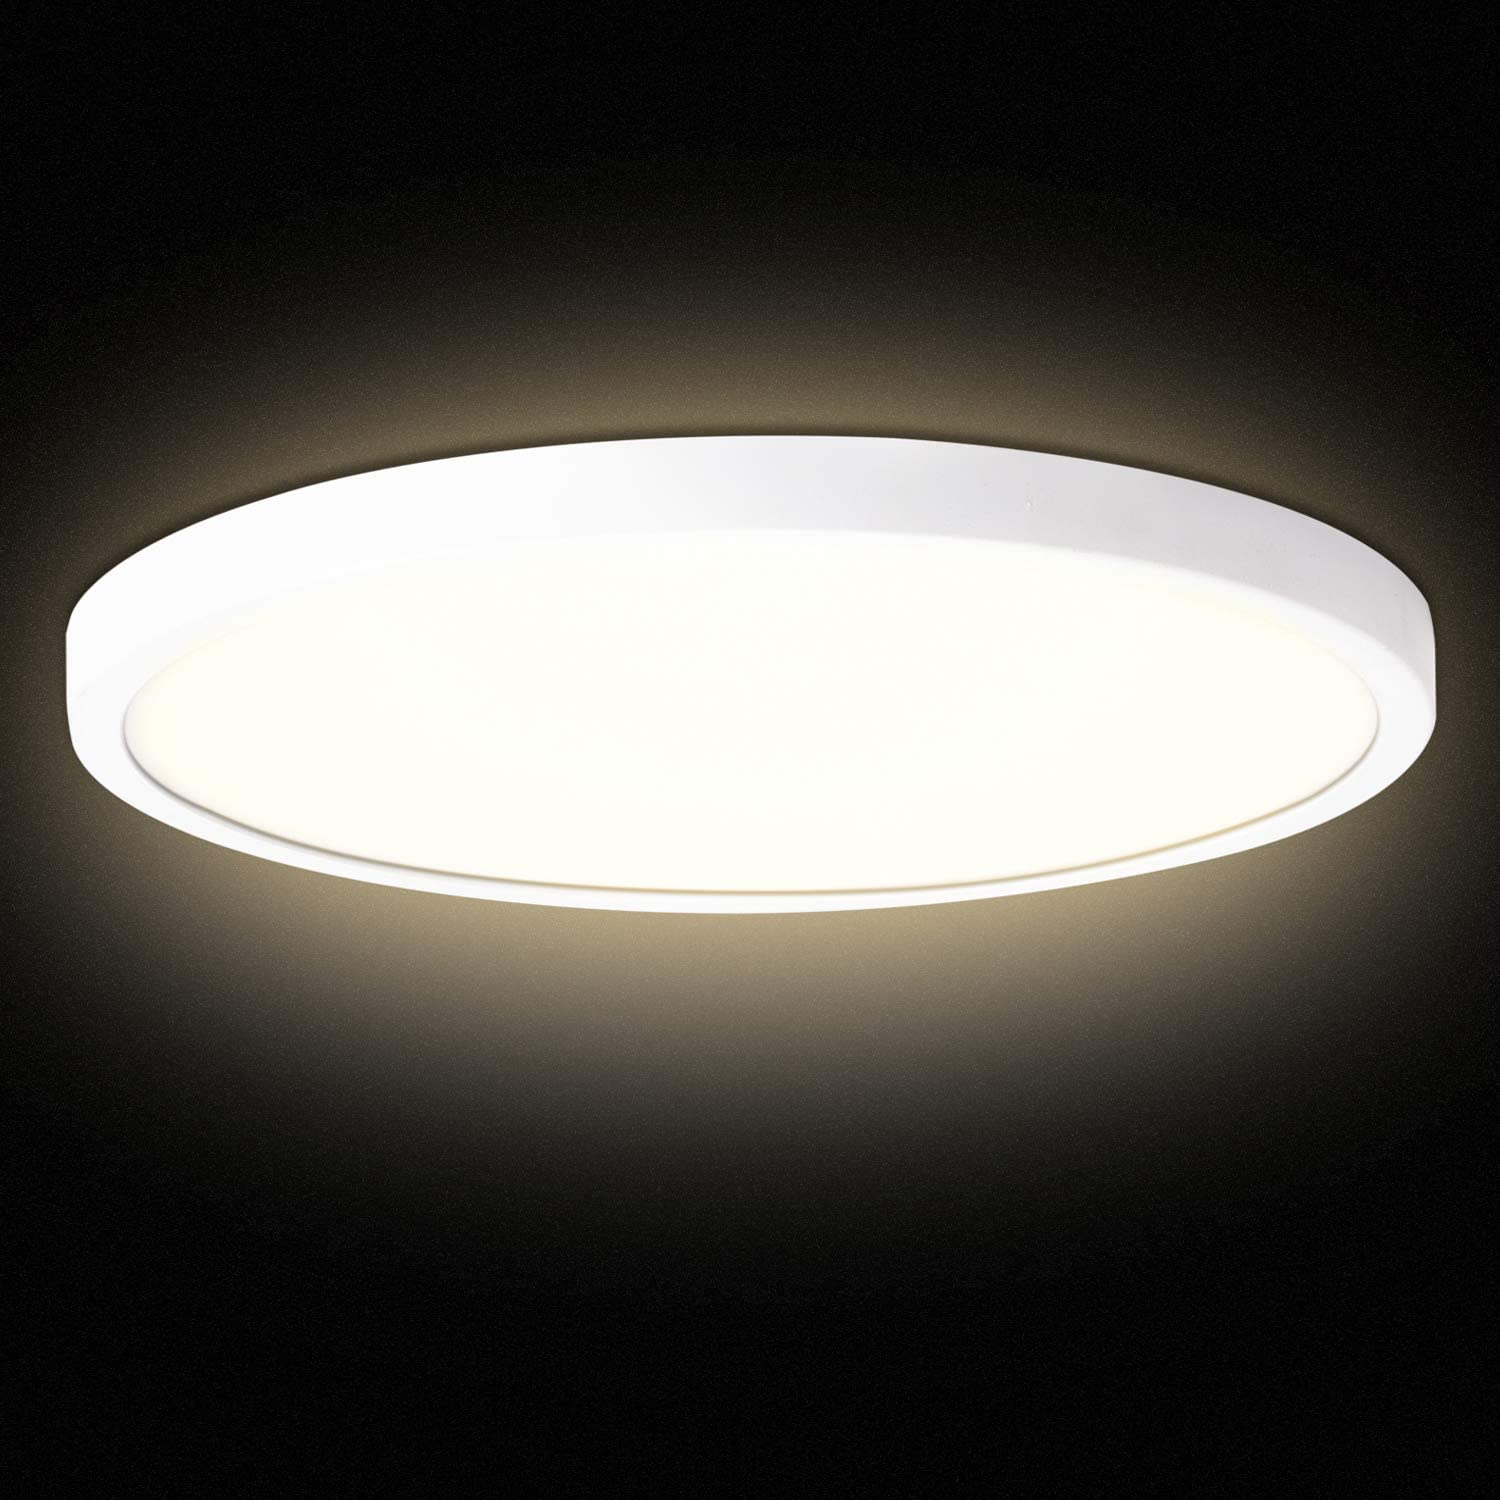 Combuh LED Flush Mount Ceiling Light Fixture 38W (200W Equivalent) 4000K Natural White 3420LM Modern Round 15.7 inch Ceiling Lamp for Kitchen, Bedroom, Living Room, Hallway, Stairwell